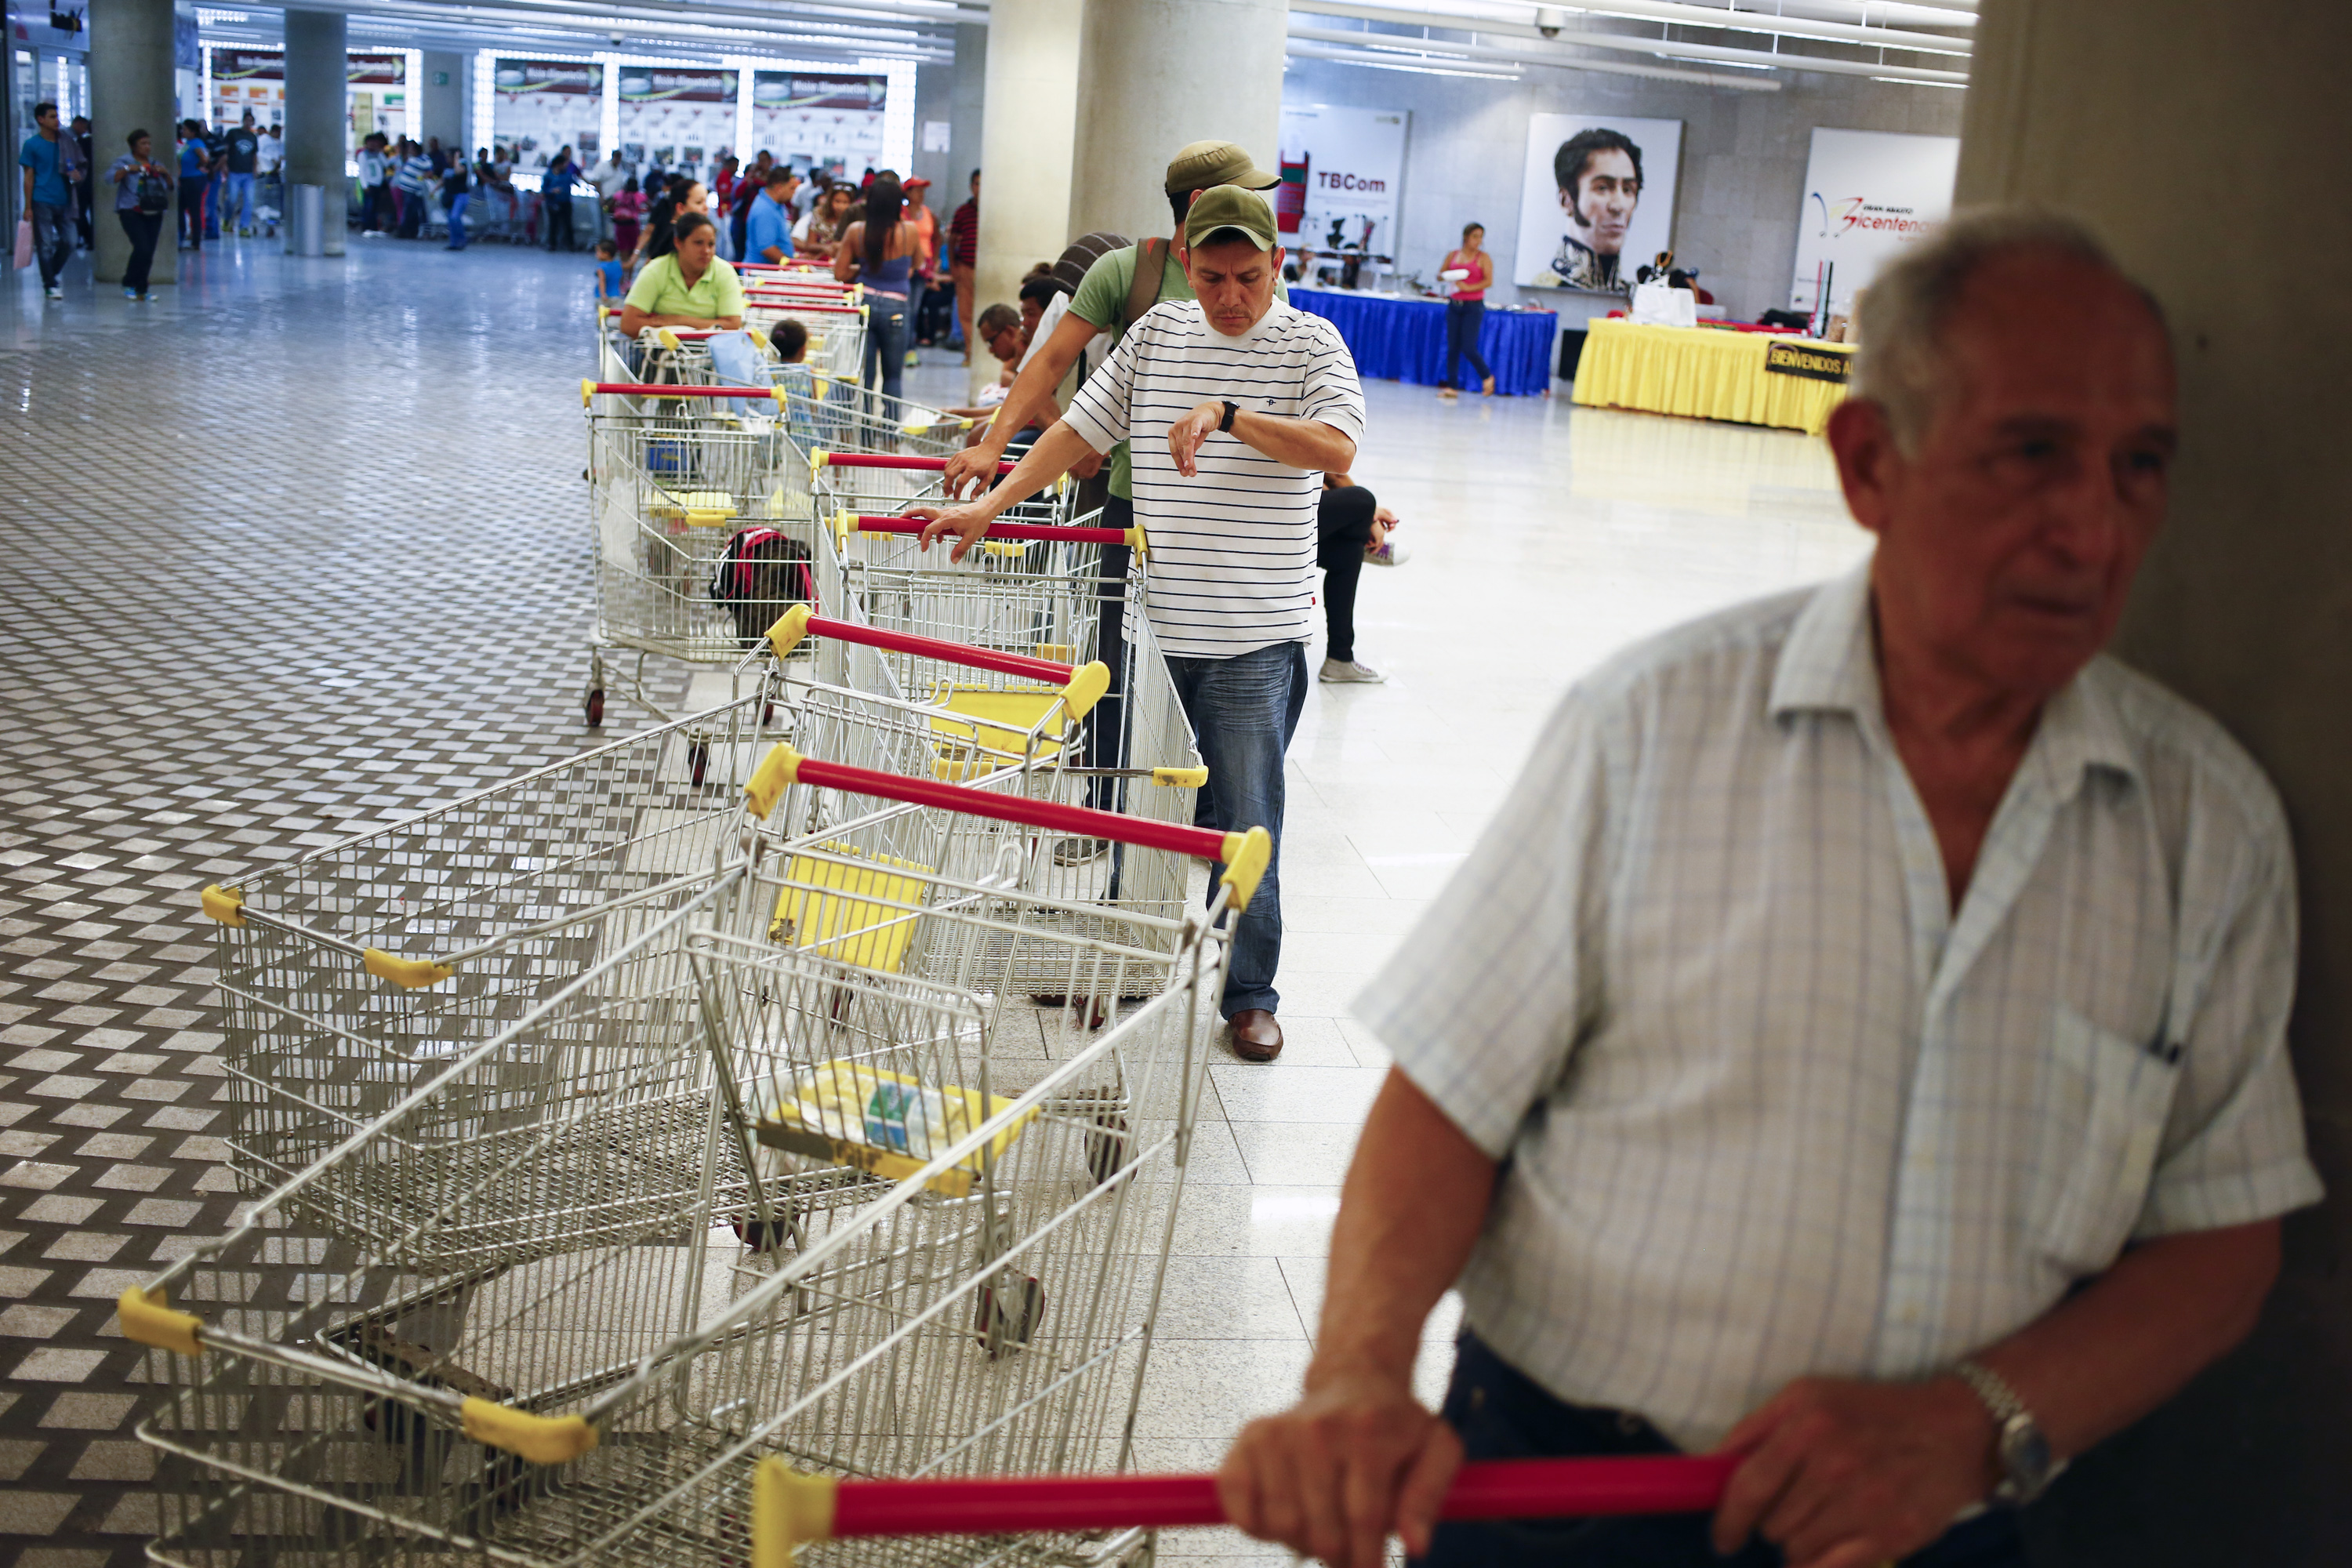 Customers line up to shop at a state-run Bicentenario supermarket in Caracas, Venezuela, May 2, 2014.  President Nicolas Maduro is introducing a controversial shopping card intended to combat Venezuela's food shortages that has been decried by critics as a Cuban-style solution illustrating the failure of his socialist policies. Photo by Jorge Silva/Reuters